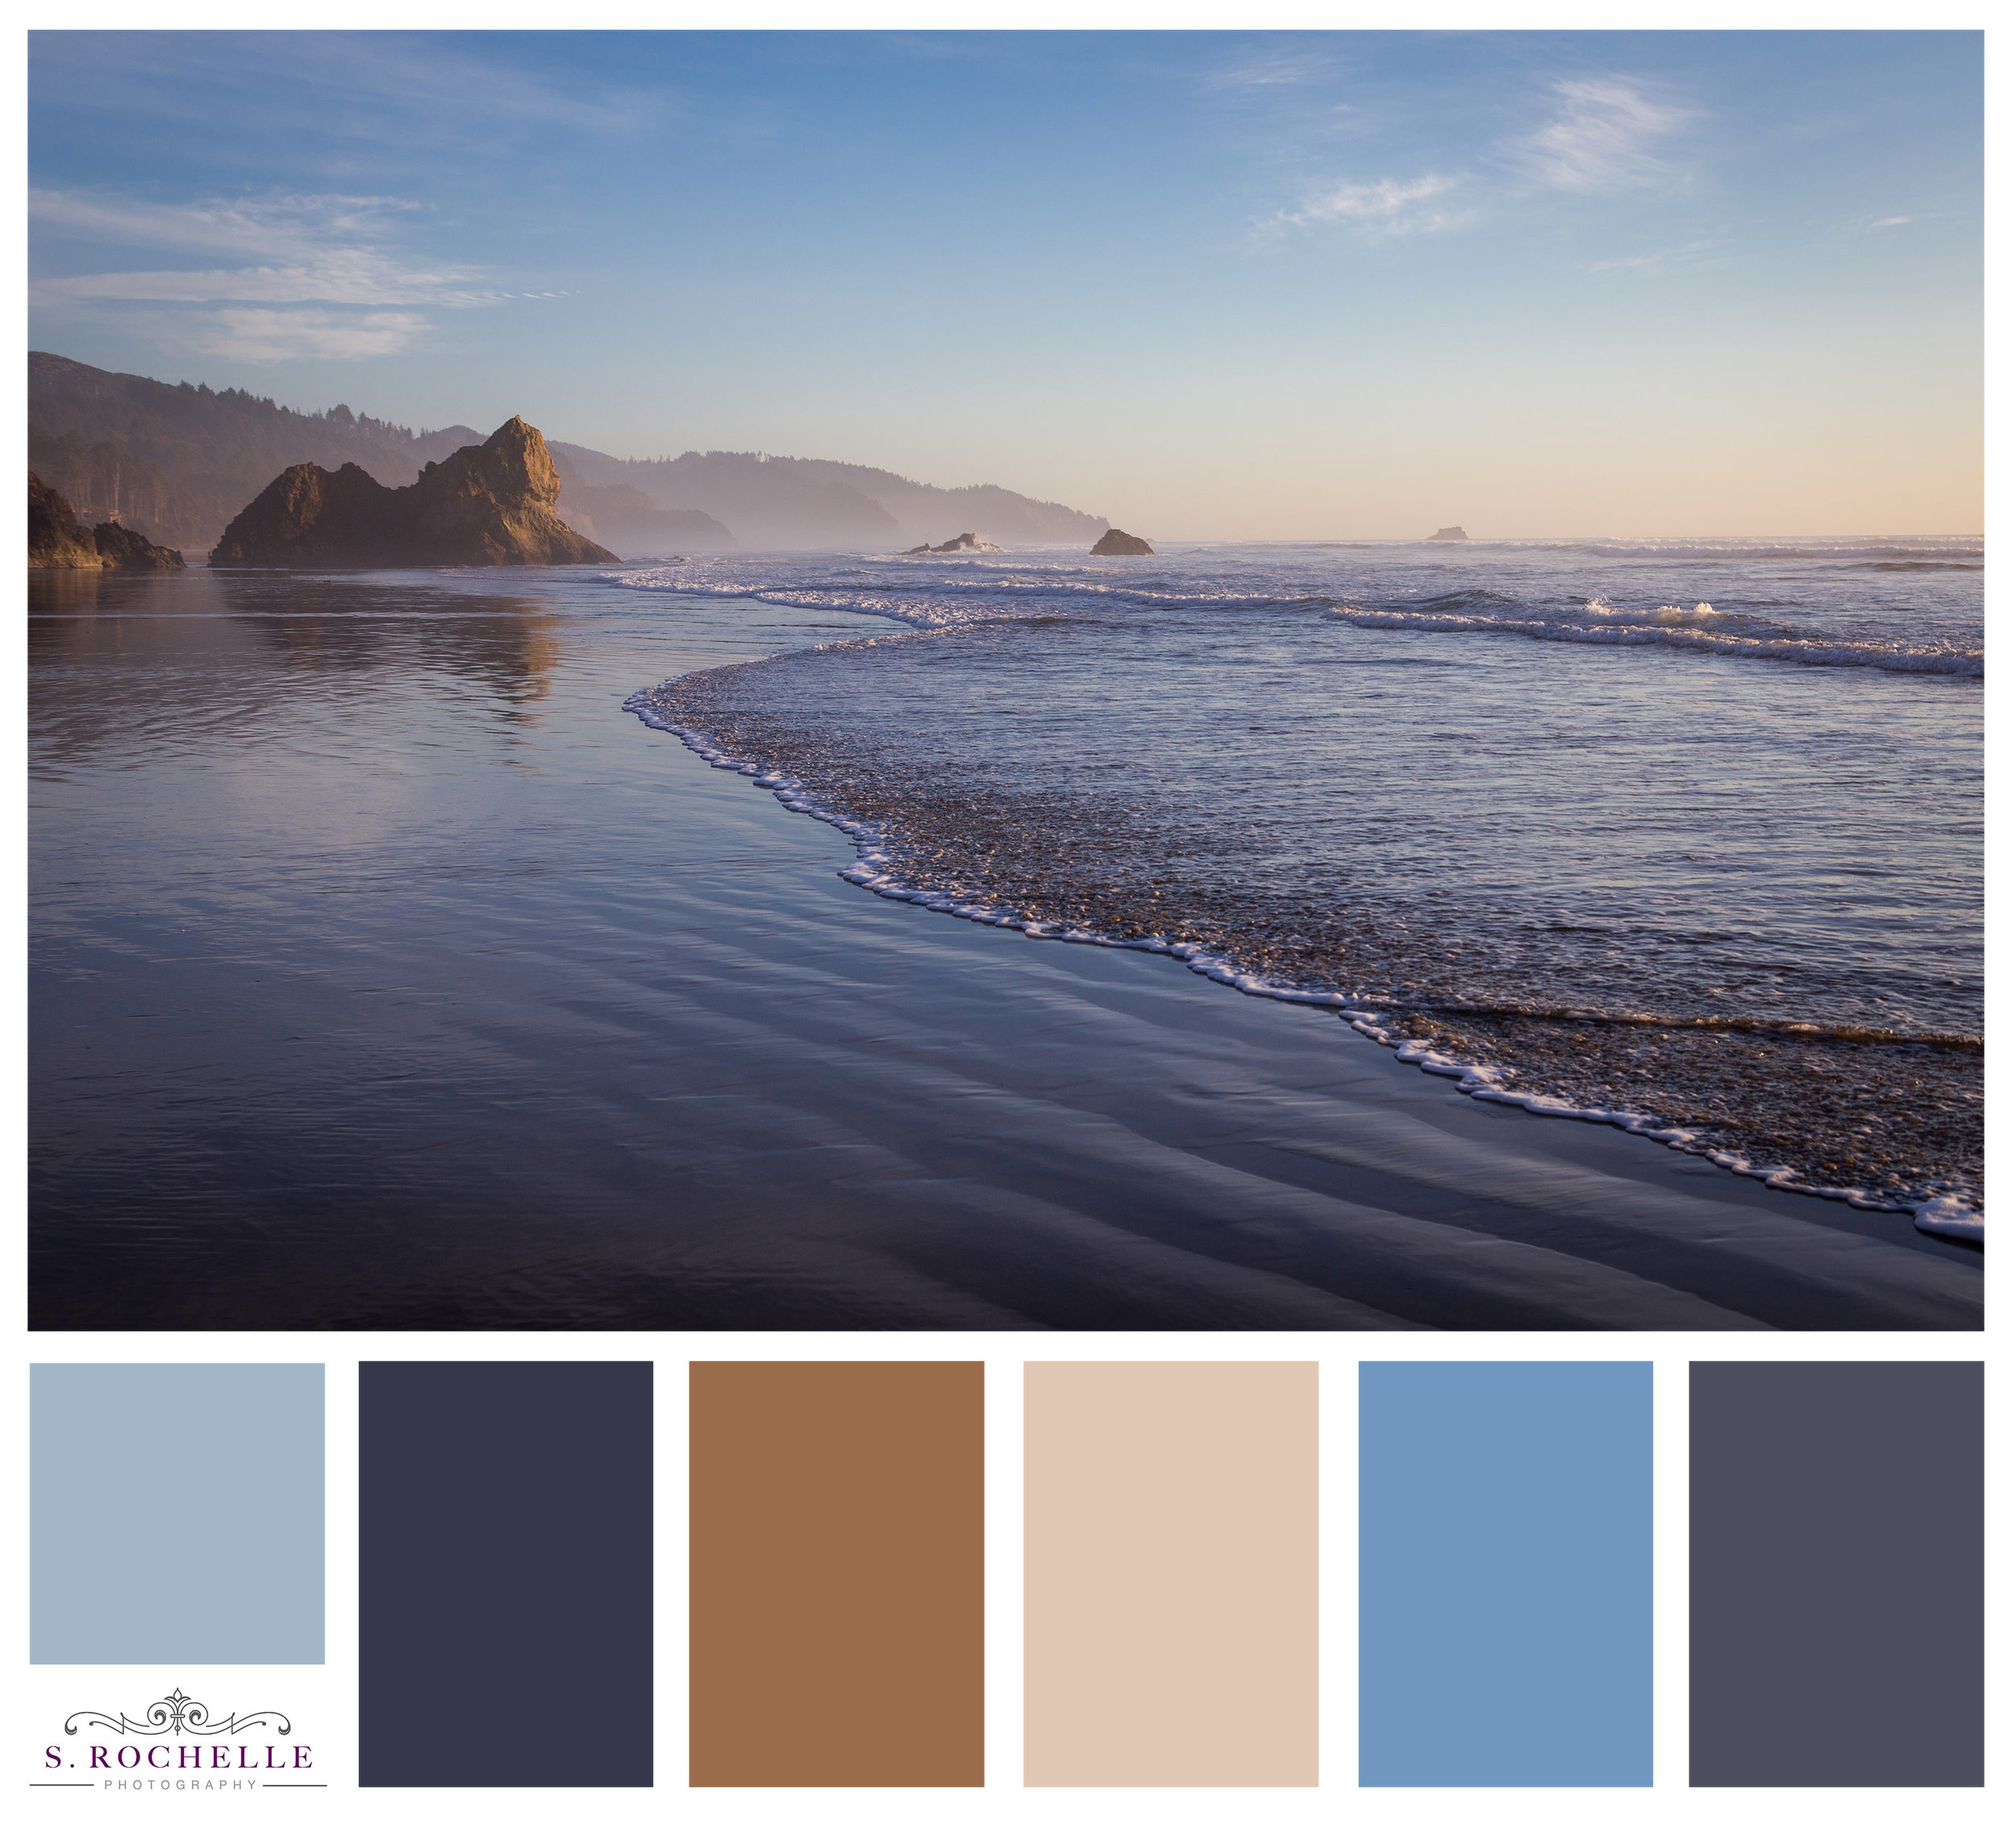 Lion_Rock_Sunset_S_Rochelle_Photography_20180311_IMG_6258_ColorPalette.jpg